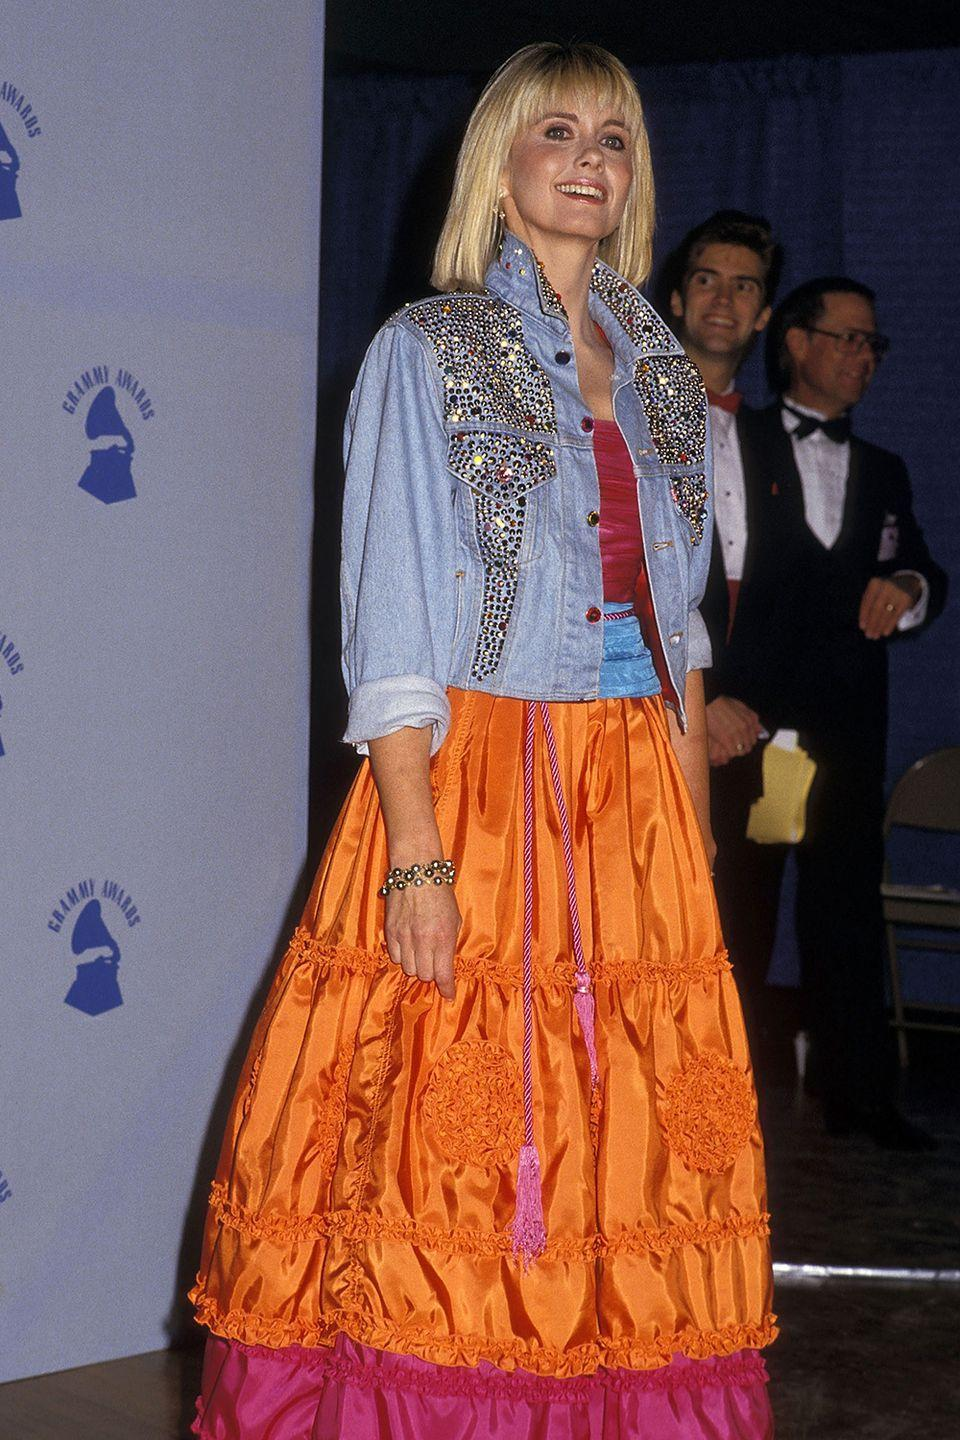 <p>I like to think ONJ spent the week before the Grammys sitting at home bedazzling that denim jacket herself.</p>